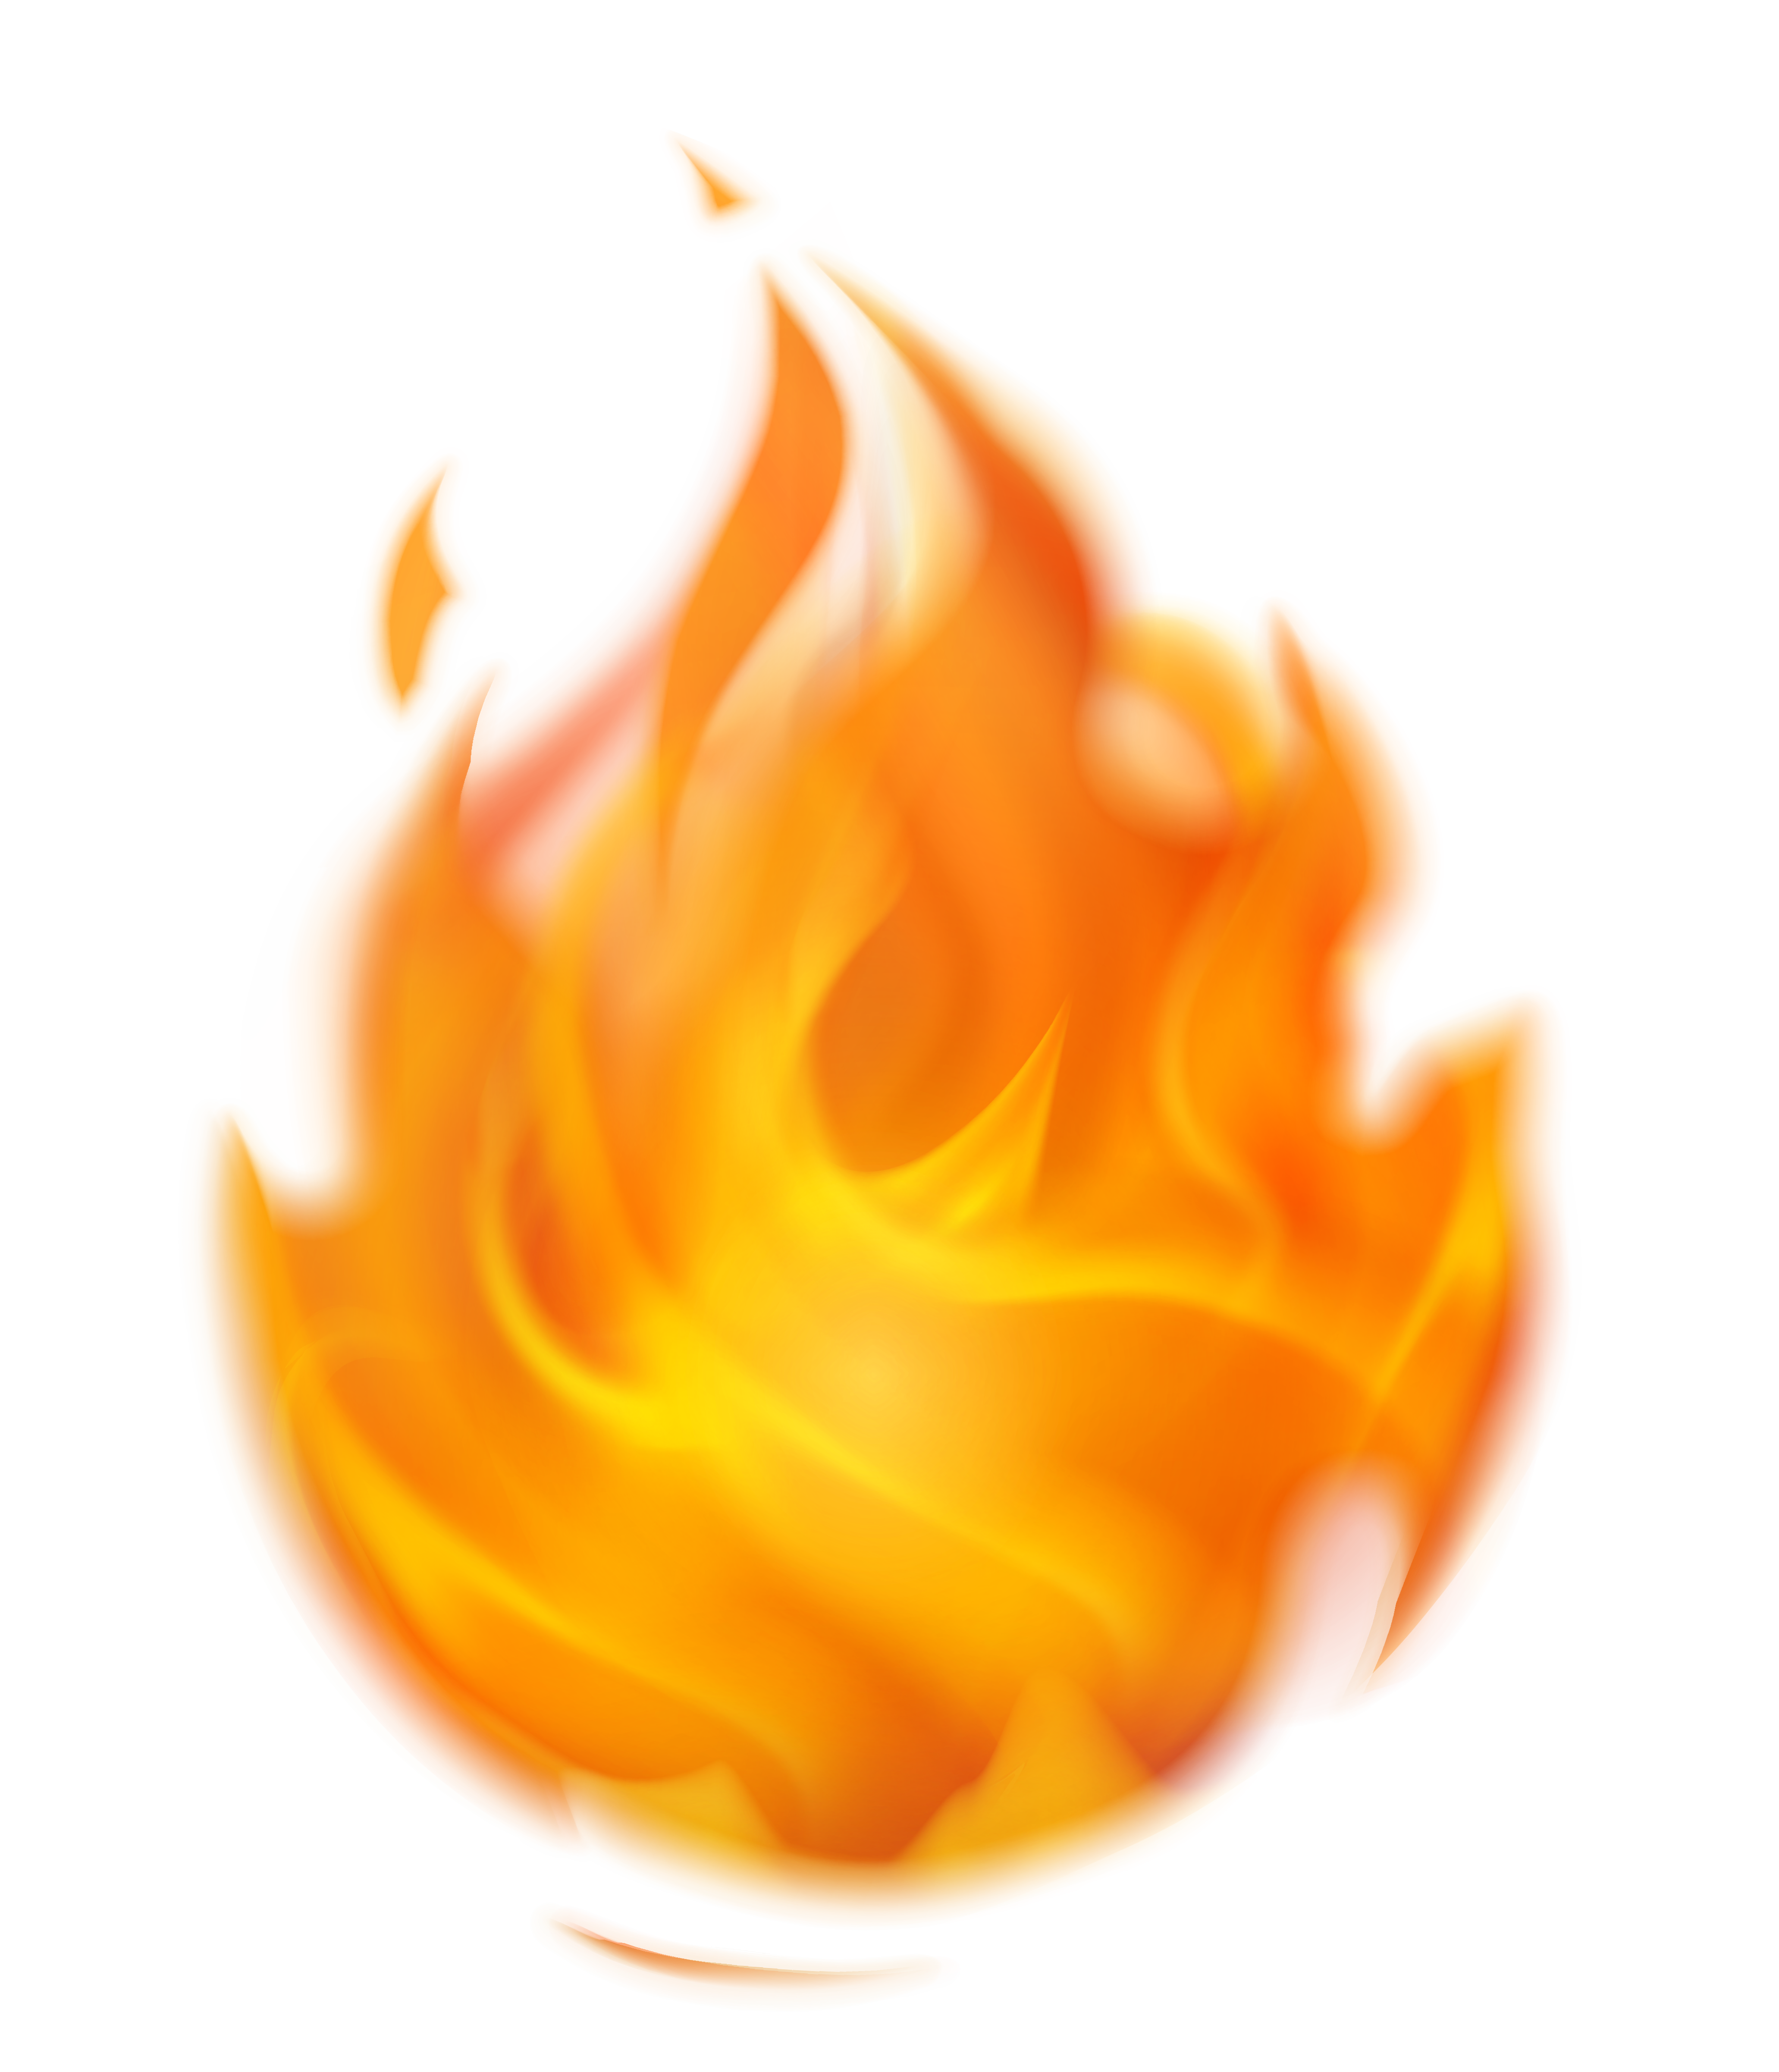 Fire clip art png. Flaming clipart picture gallery